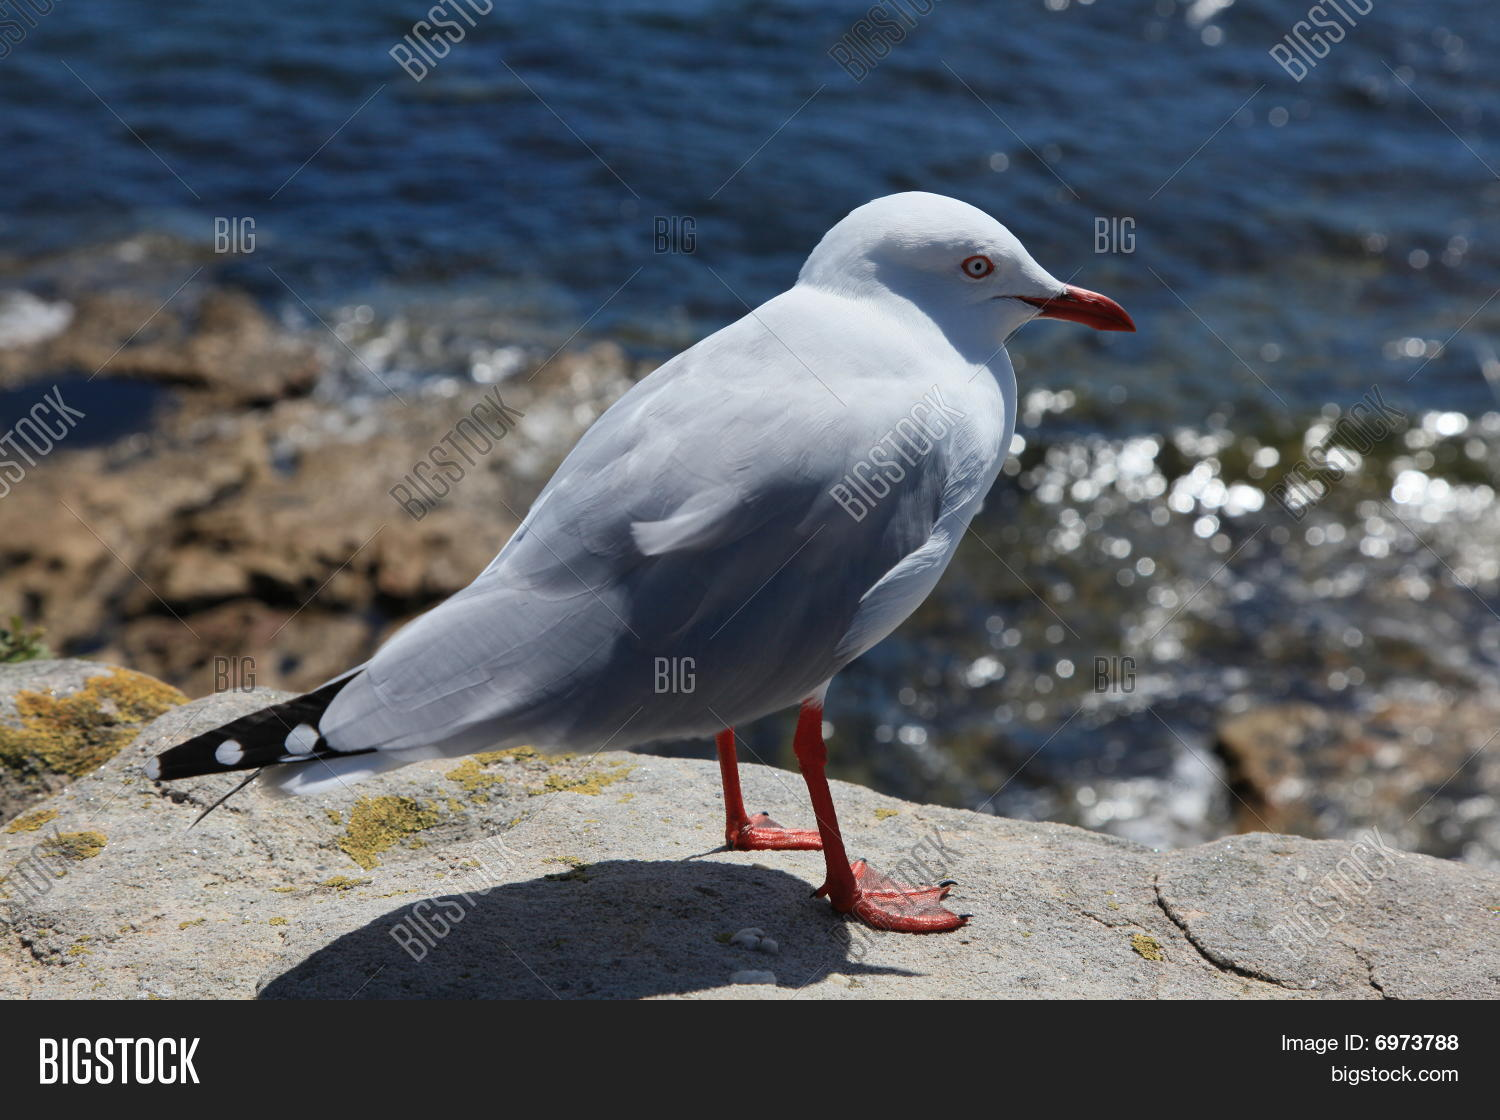 Close Up Seagull / Bird